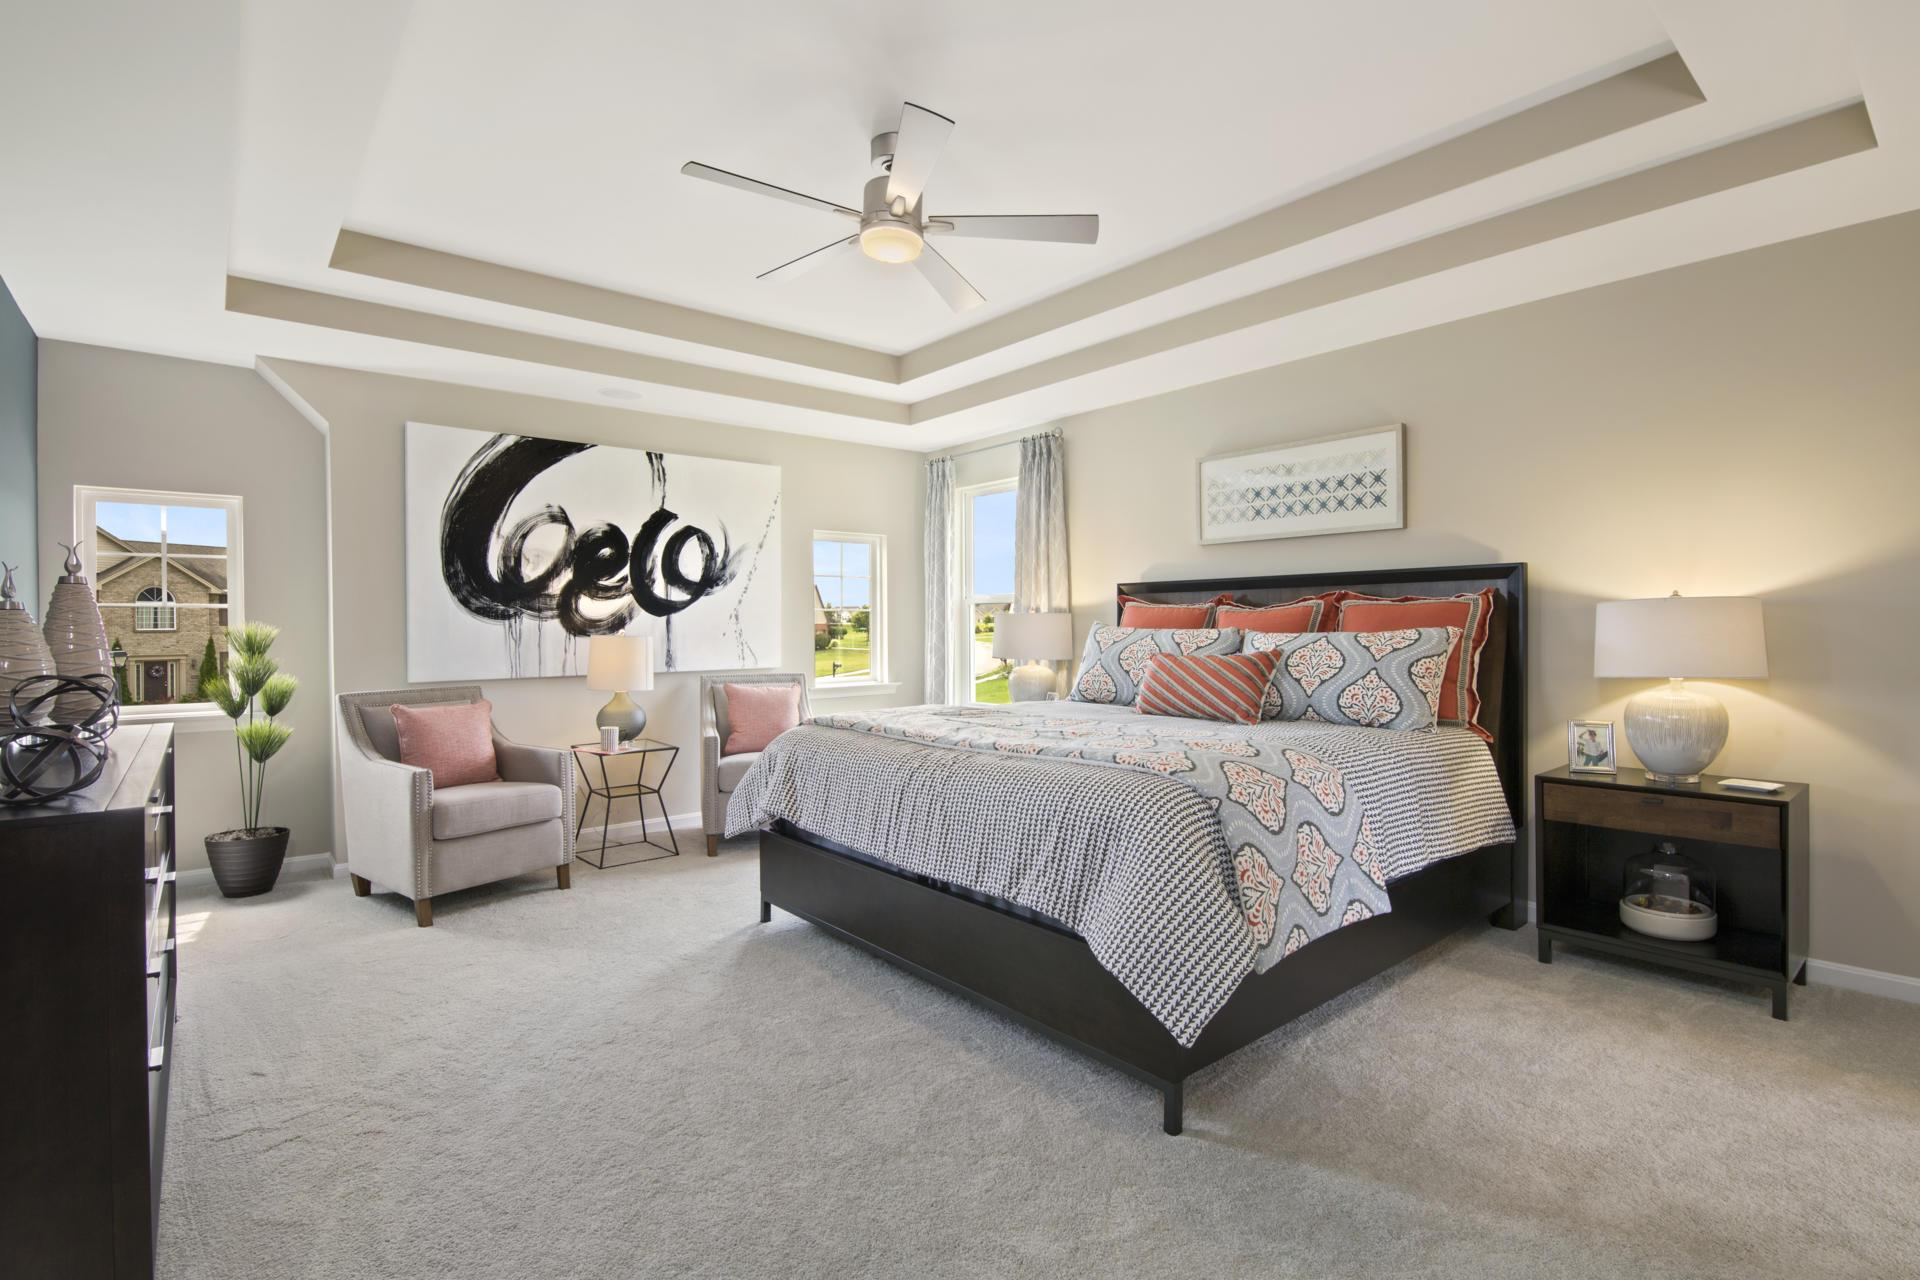 Bedroom featured in the Quentin By Drees Homes in Cincinnati, KY